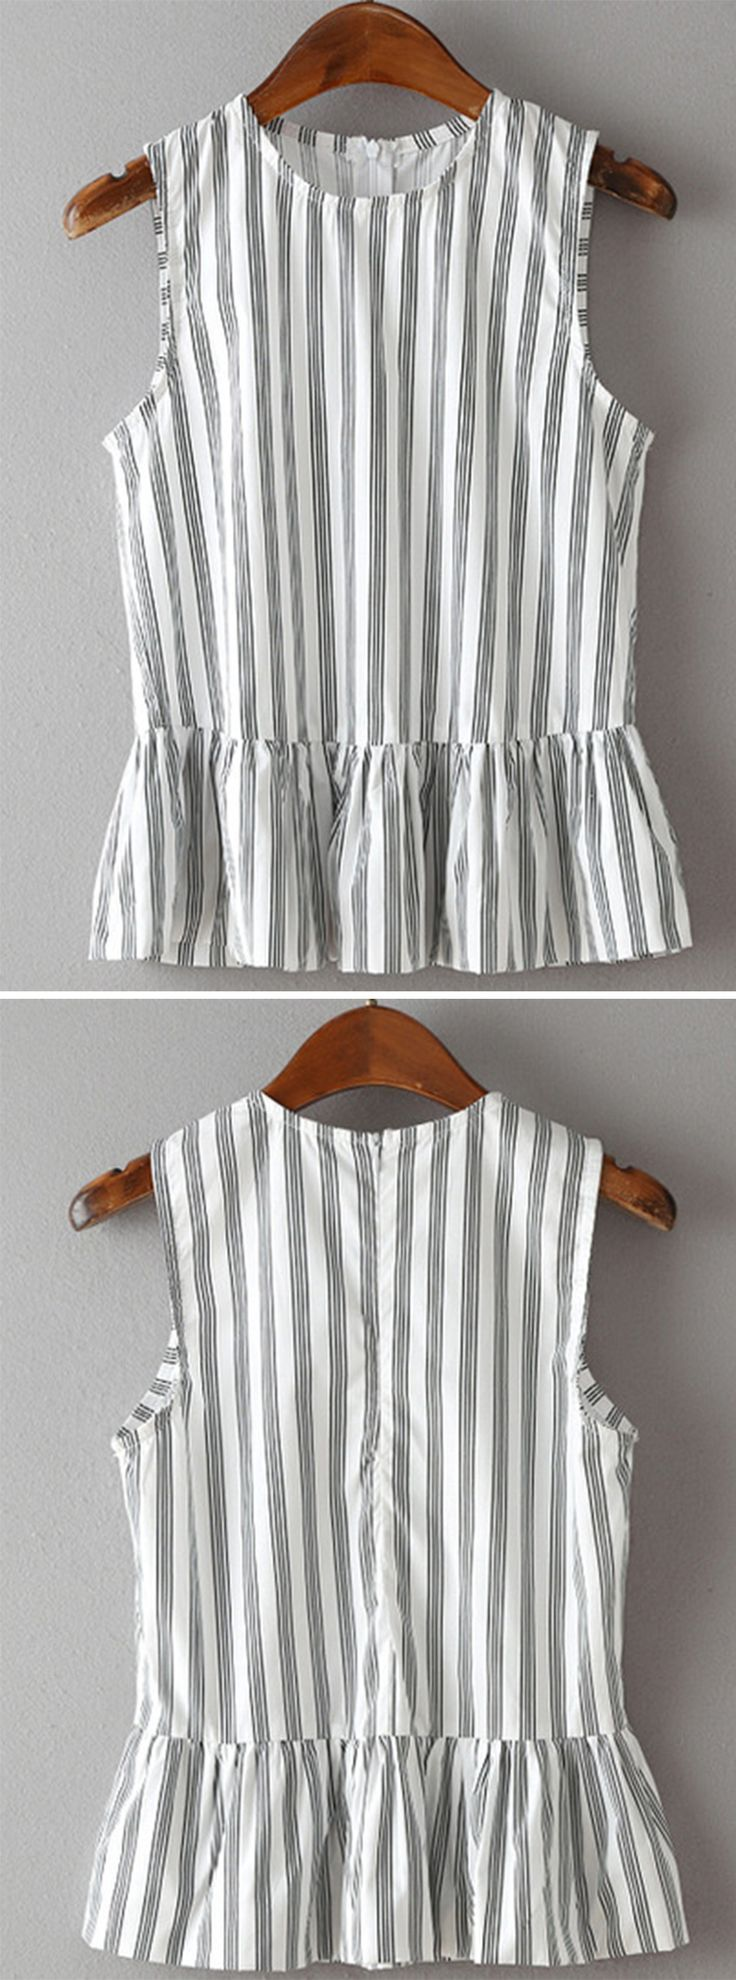 Vertical Striped Sleeveless Peplum Top: PS: Esto con tela tipica